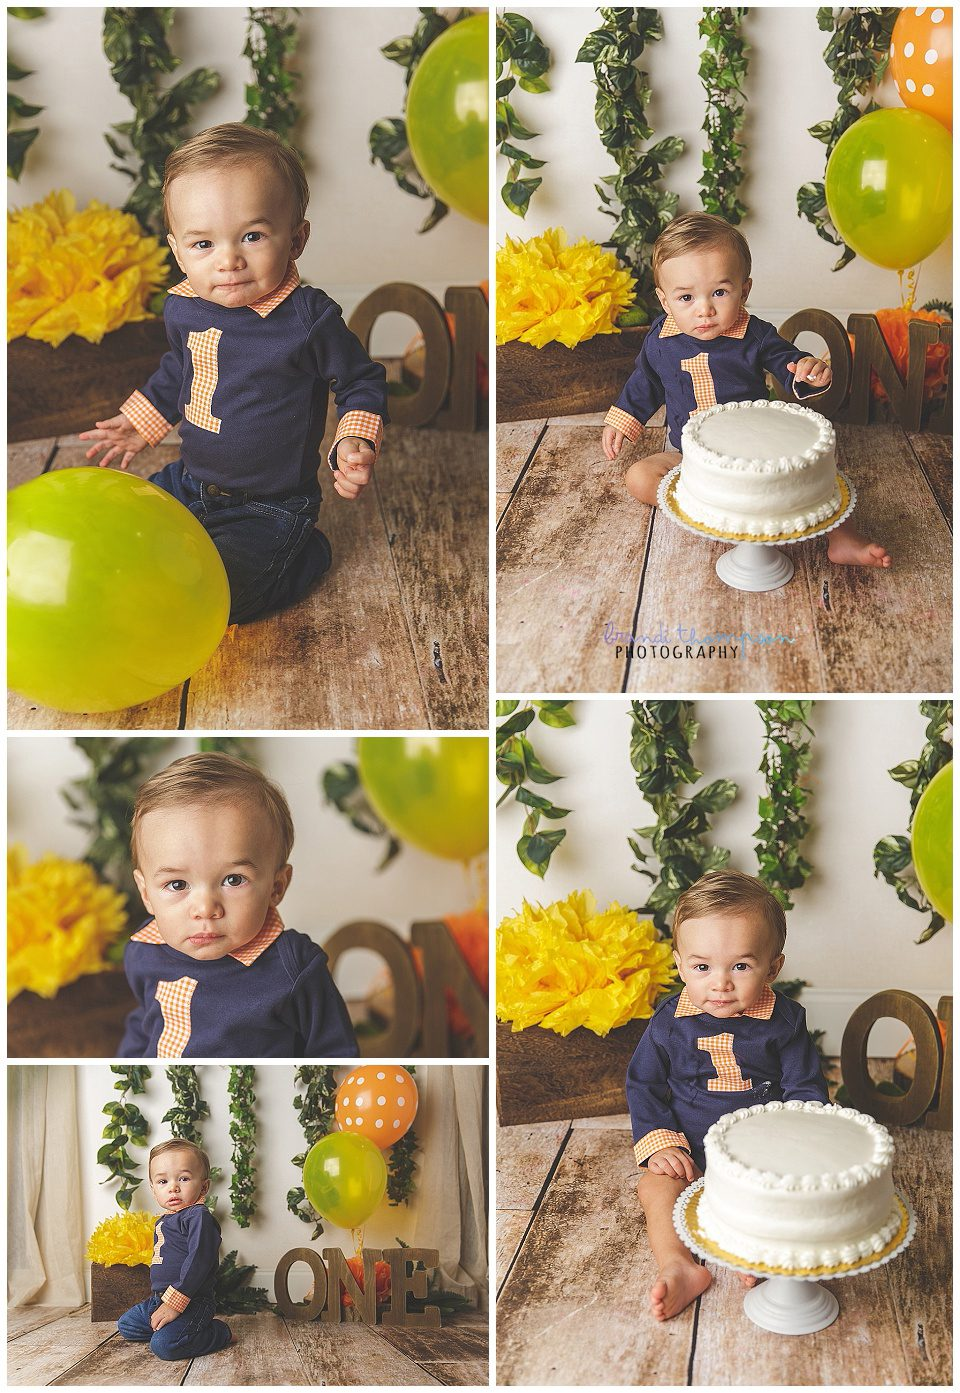 One year old boy cake smash in plano, tx studio - he wears a navy onesie with a 1 on it, and blue jeans. He eats a white cake.